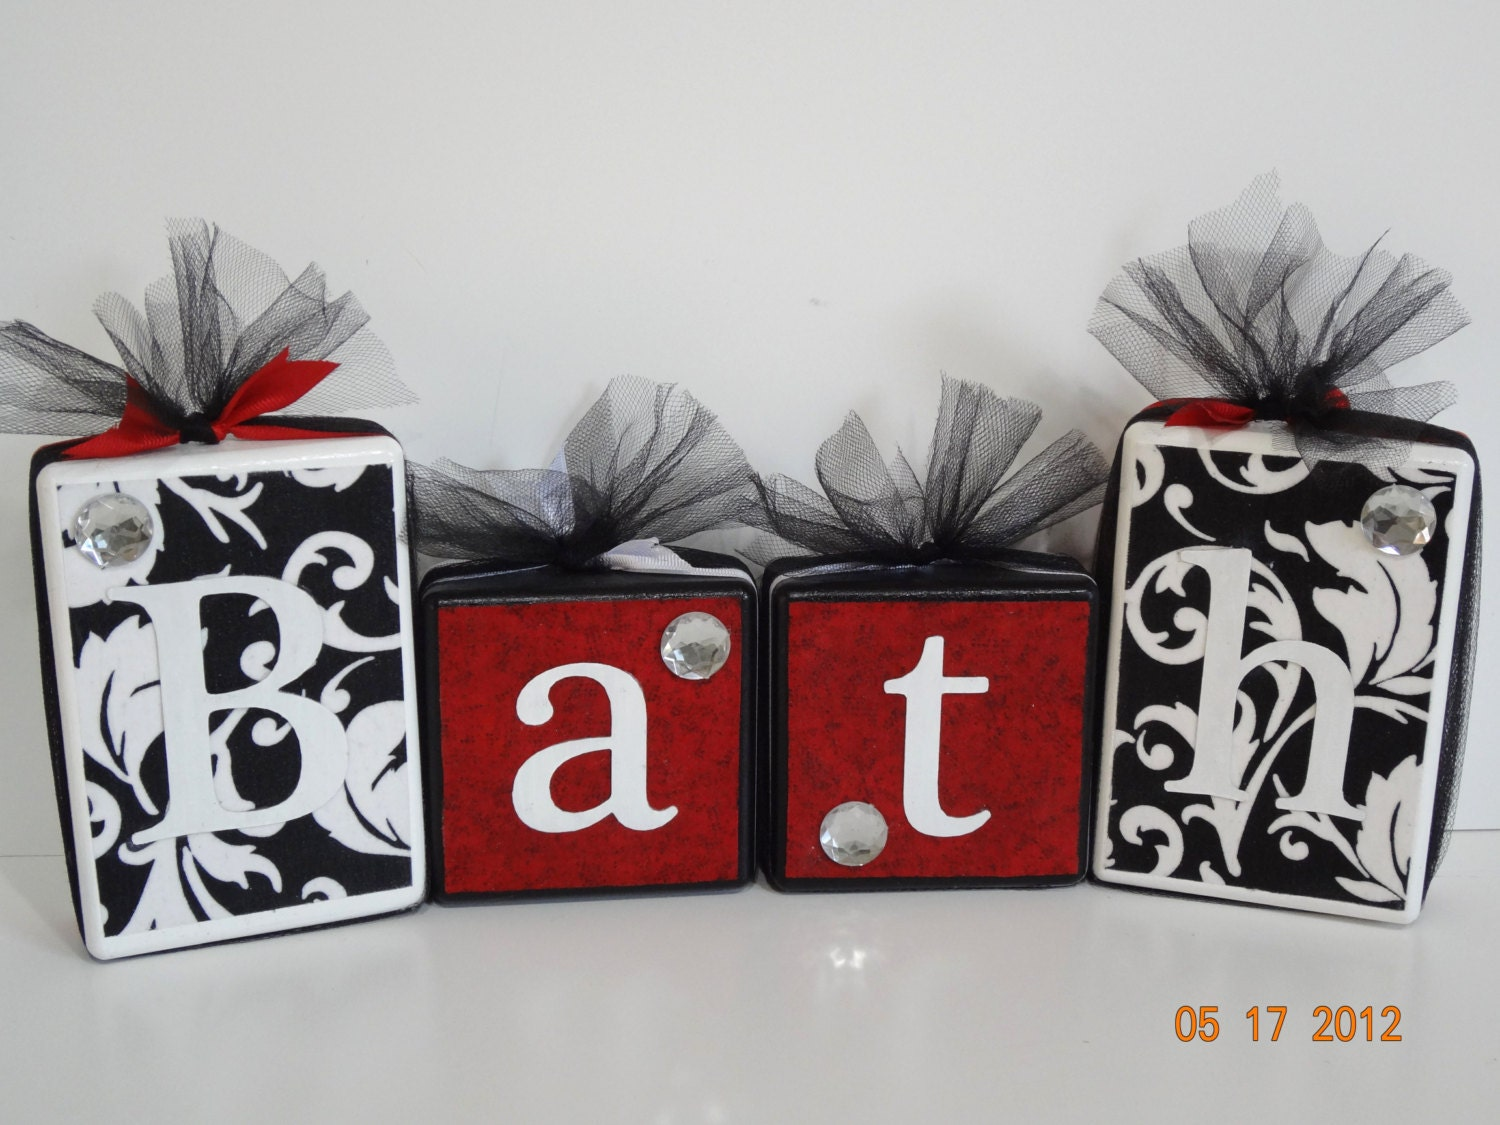 Dark Red Bathroom Decor : Bathroom sign decor art bath blocks